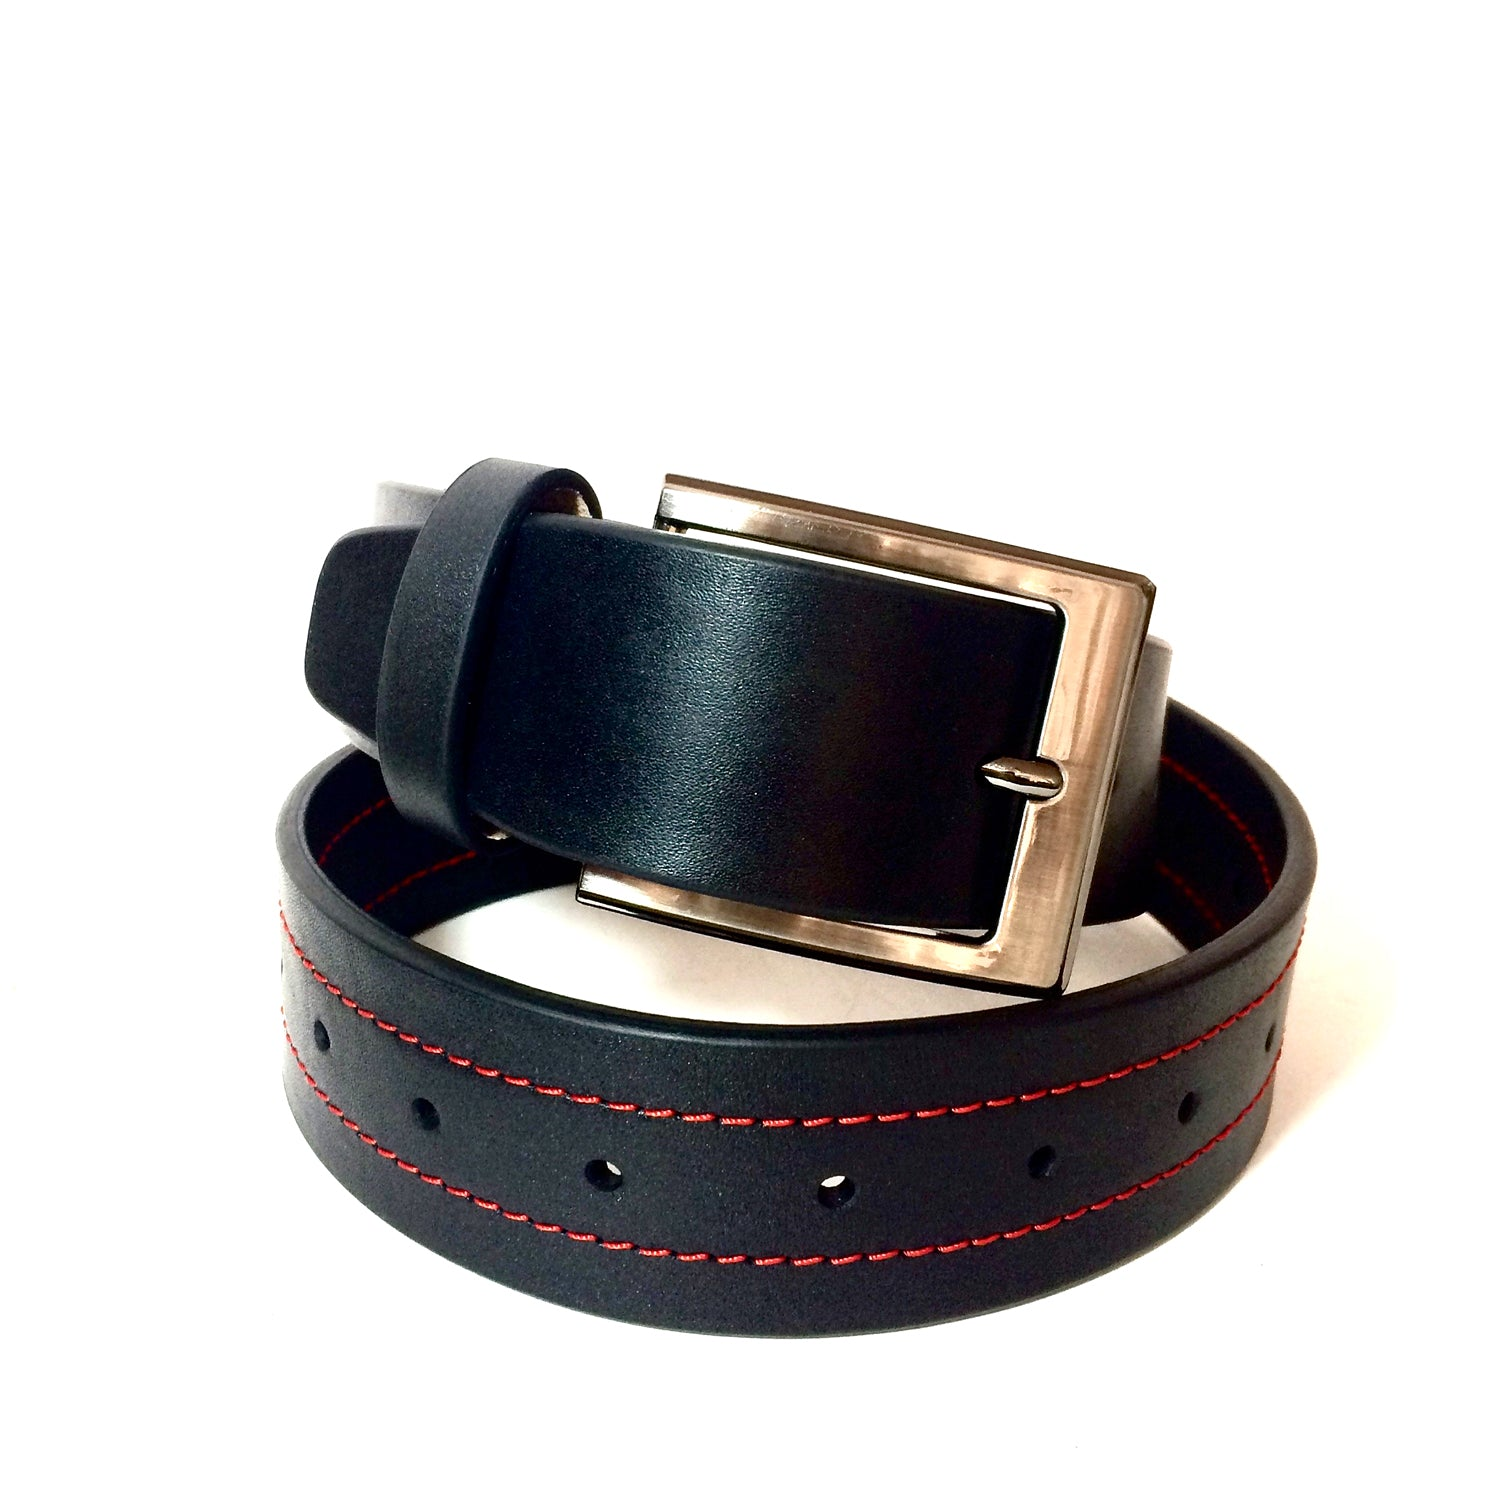 GenderFree Modern Leather Belt - NiK Kacy